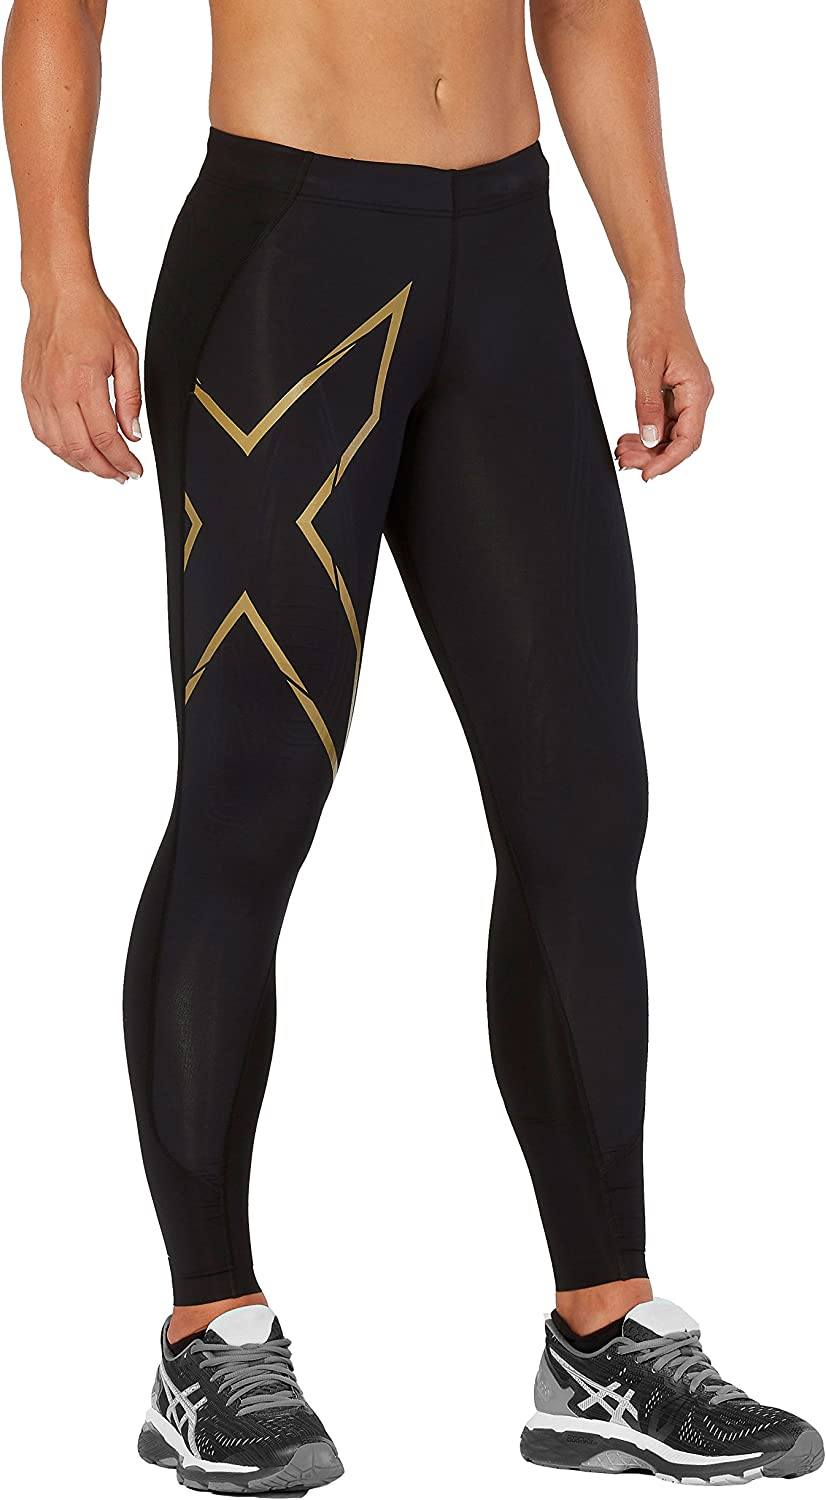 Image of 2XU Women's MCS Cross Training Compression Compression Pants & Tights